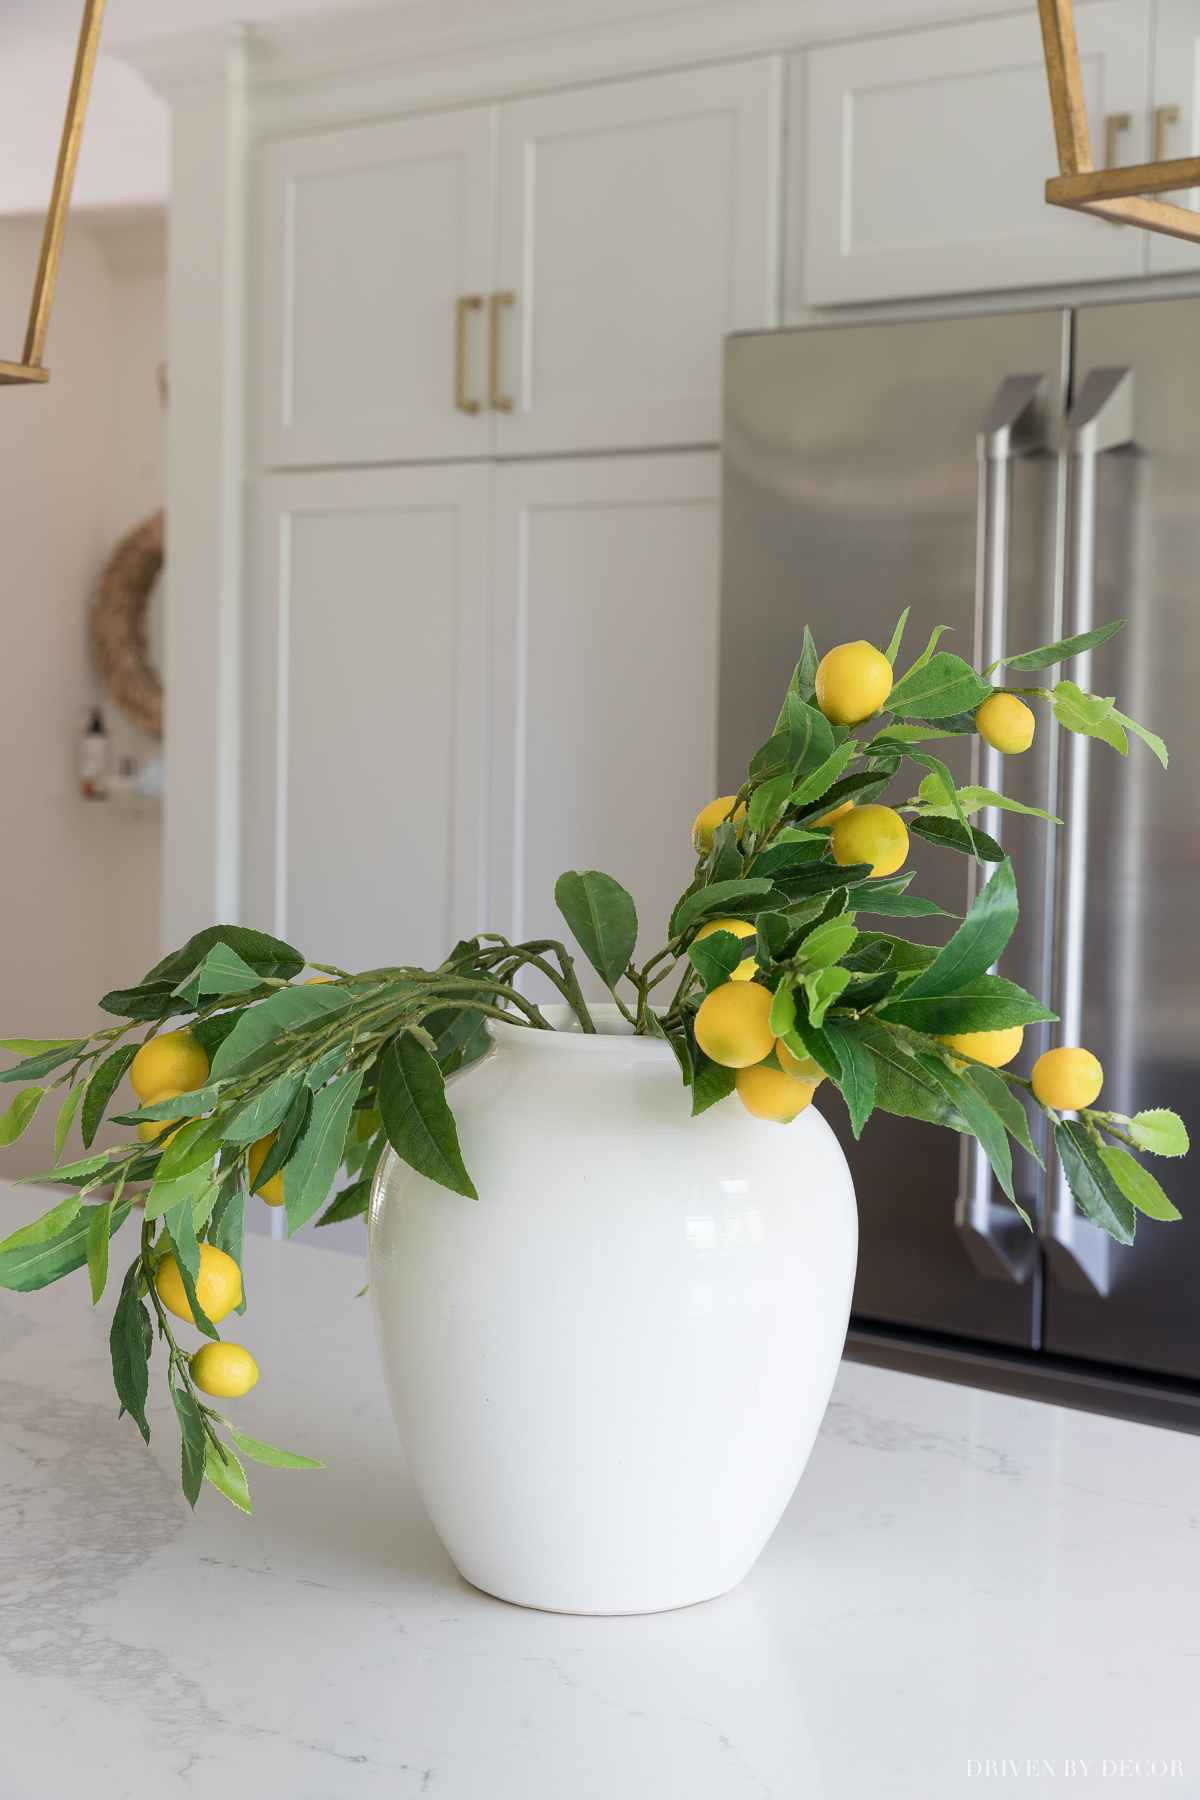 The key to making artificial flowers and branches look real is to fluff them up! Click to see the after!